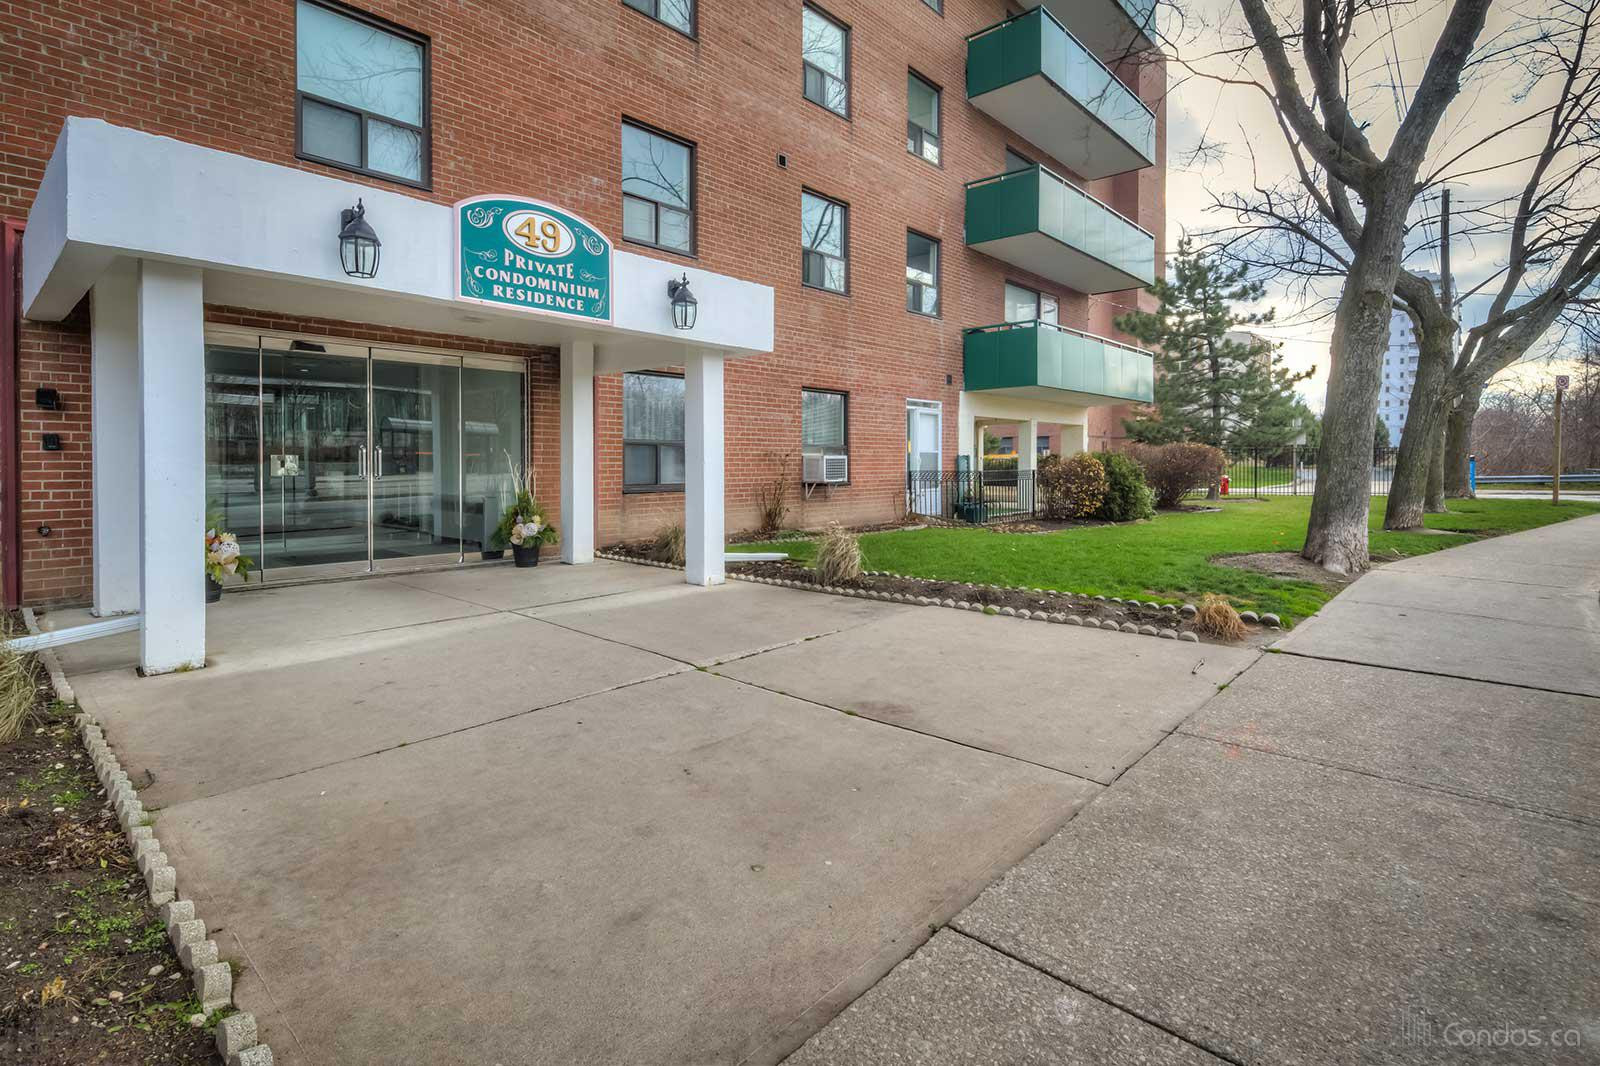 49 Queen Condos at 49 Queen St E, Mississauga 1